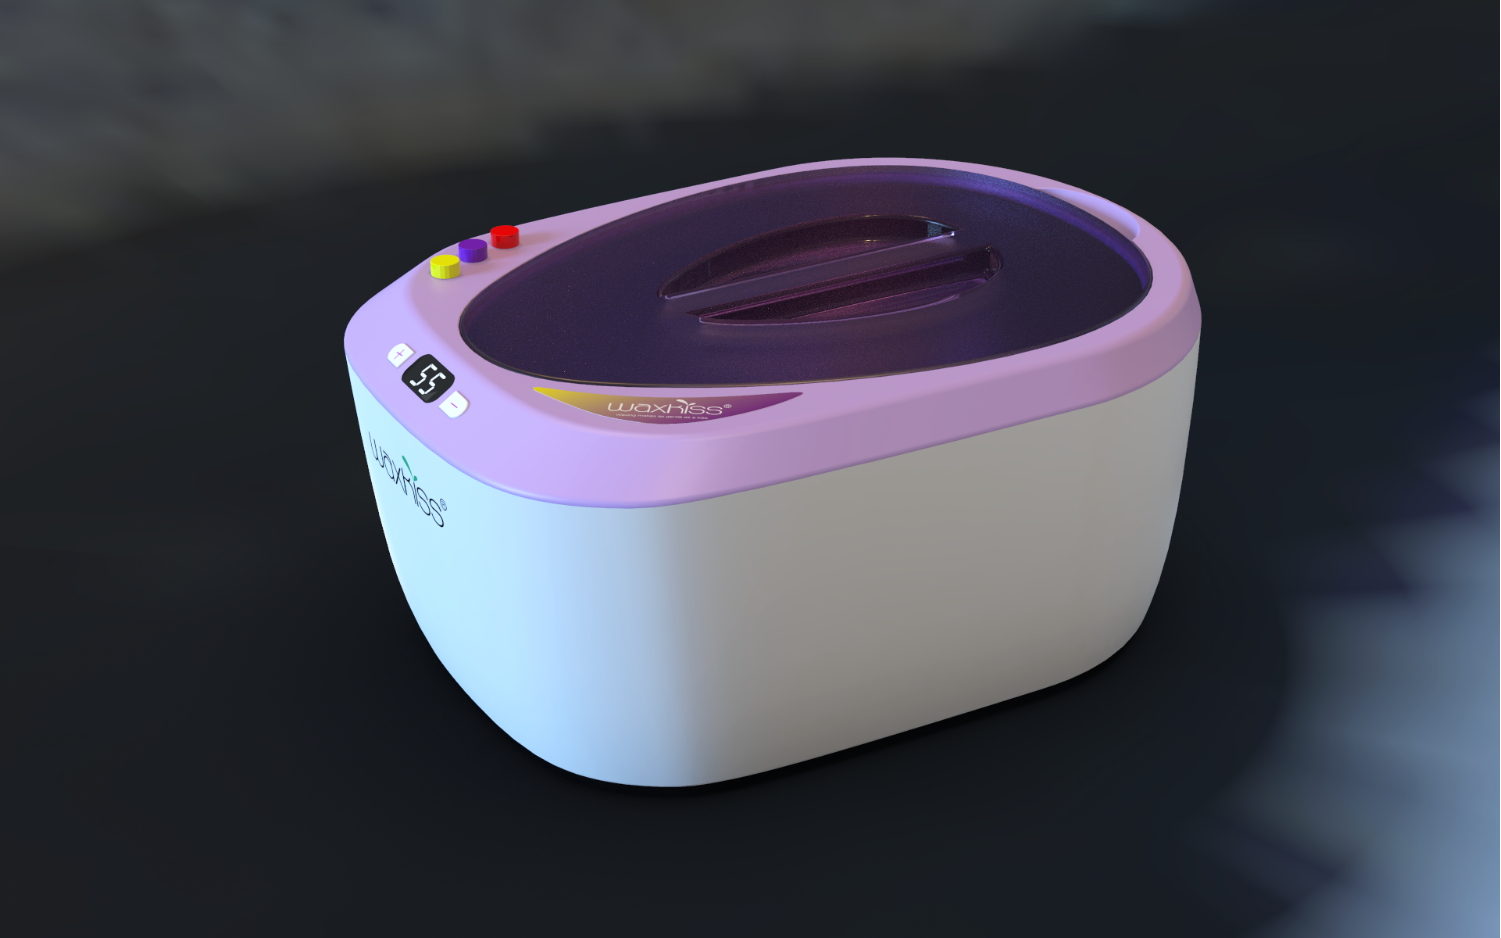 New Arrival Heater Machine 3000cc paraffin heater with essential oil hole for salon use